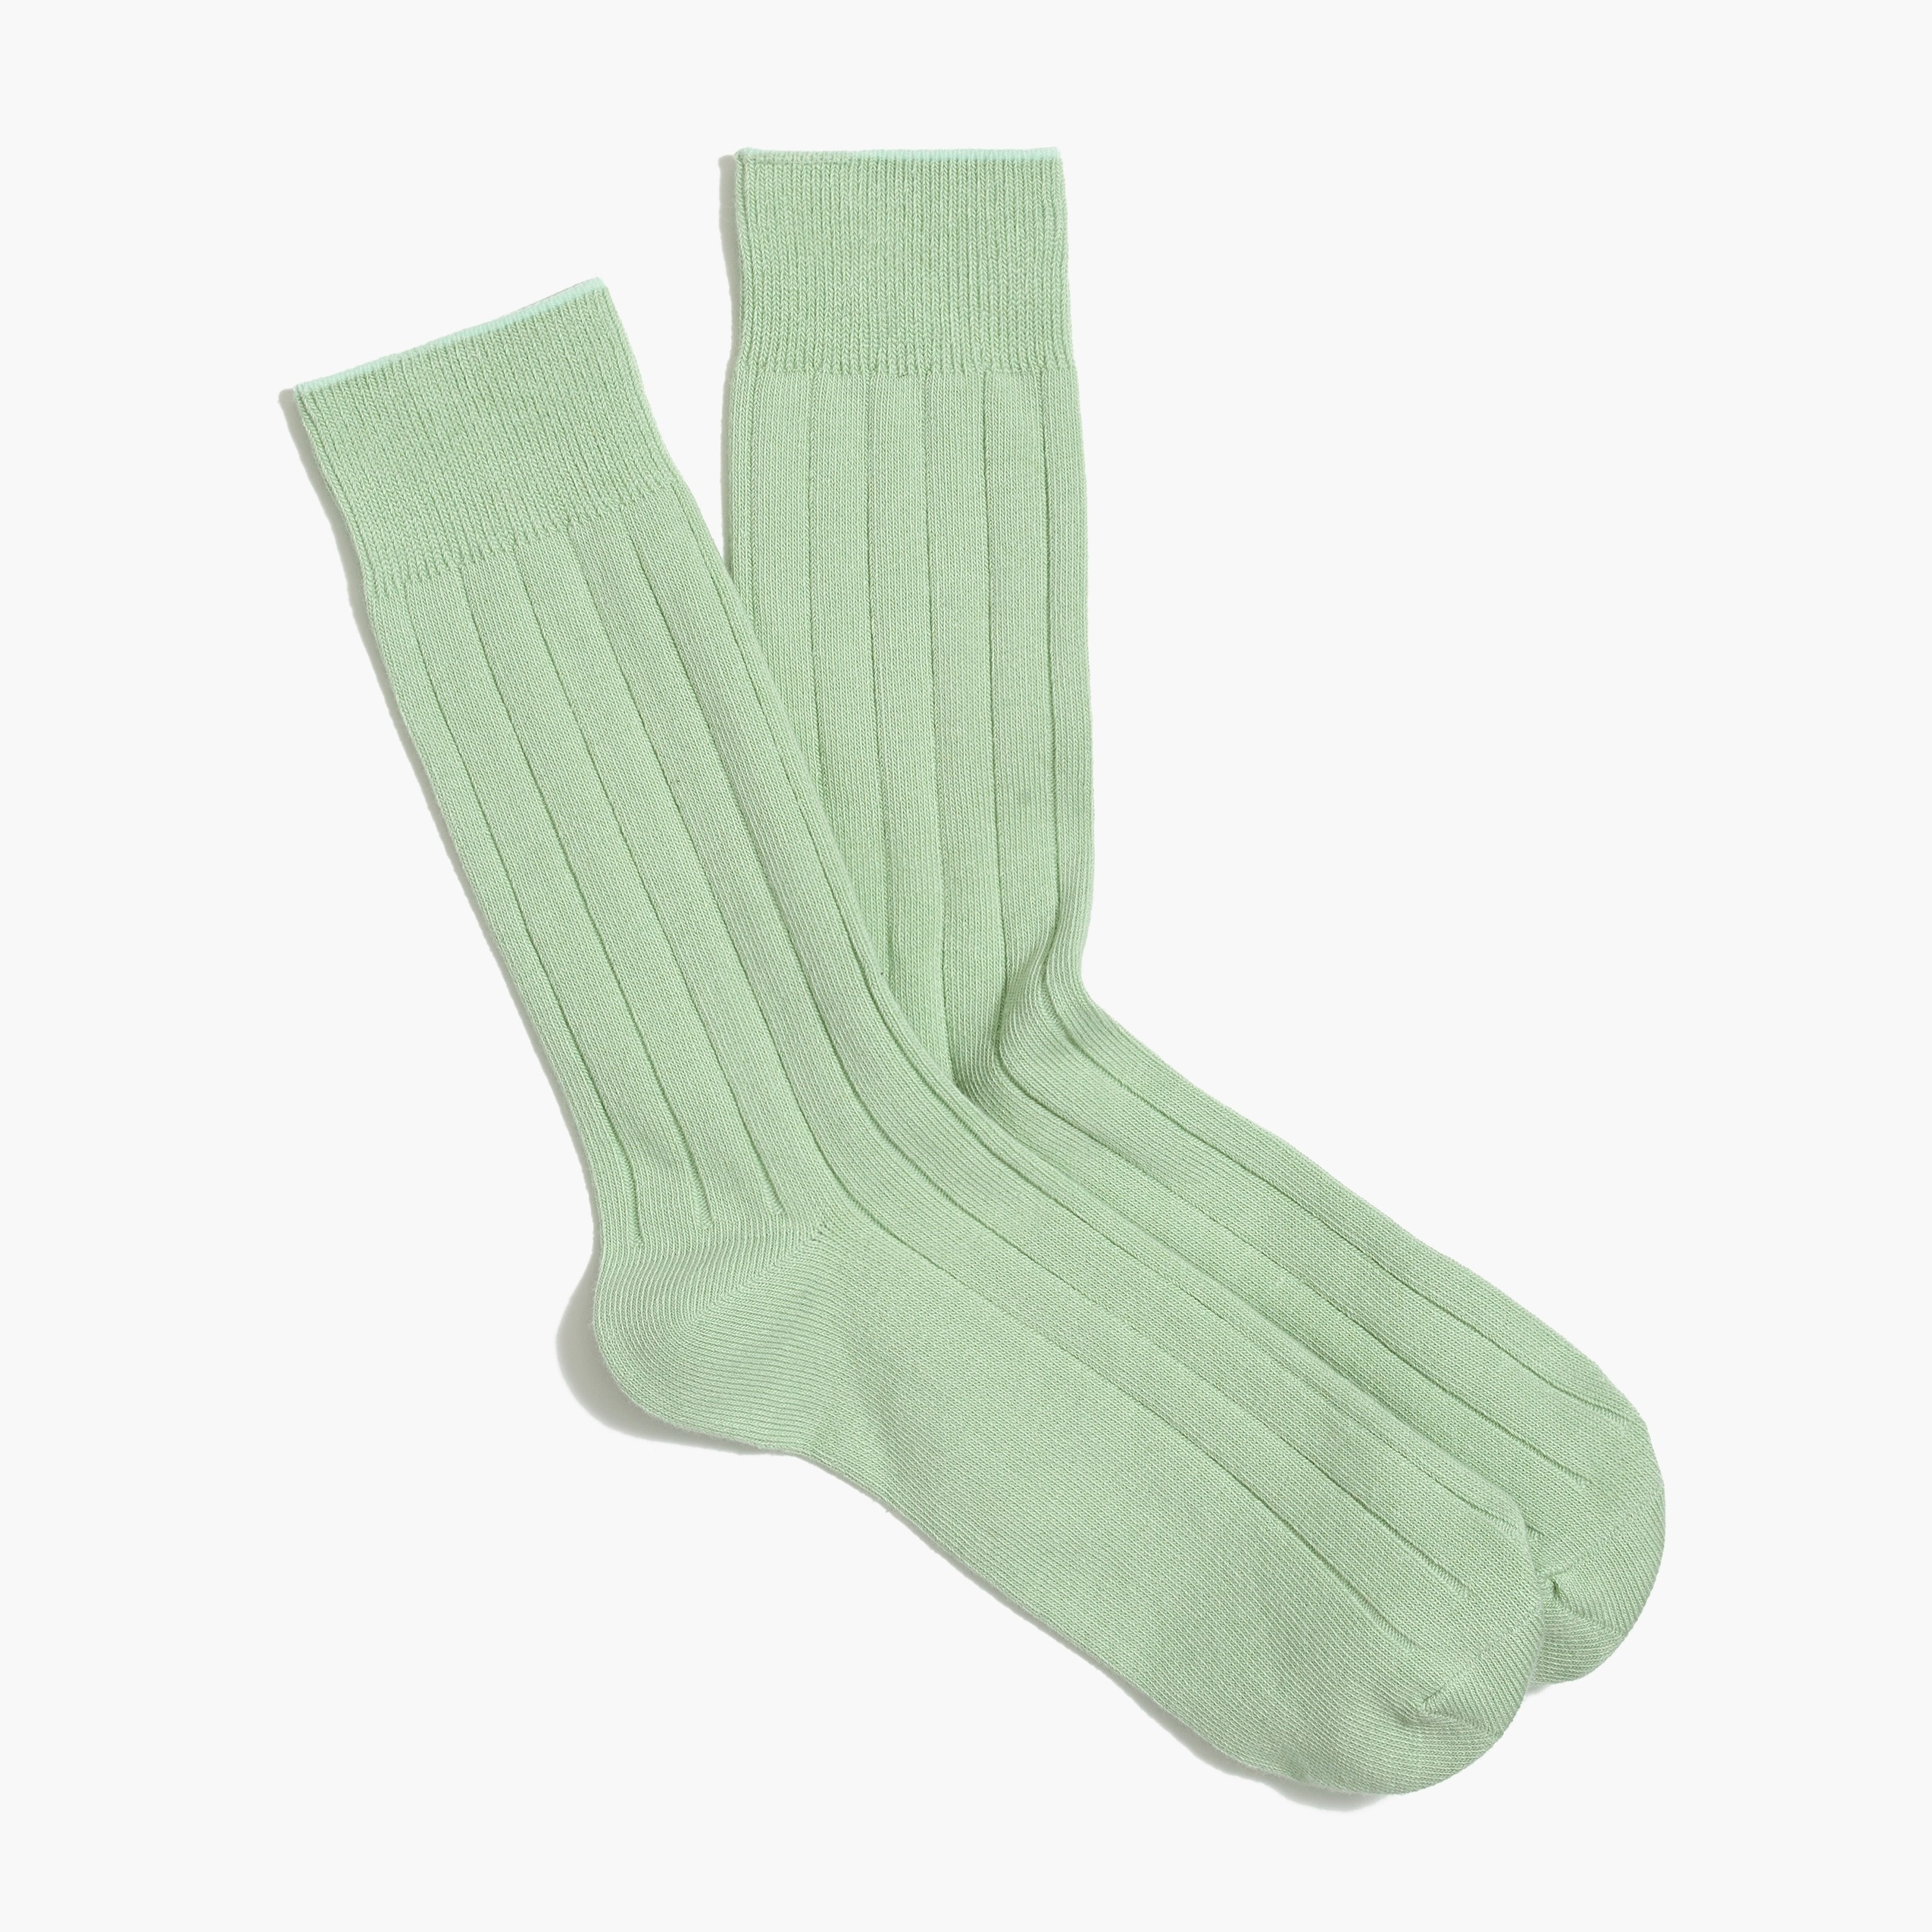 solid color socks : factorymen socks